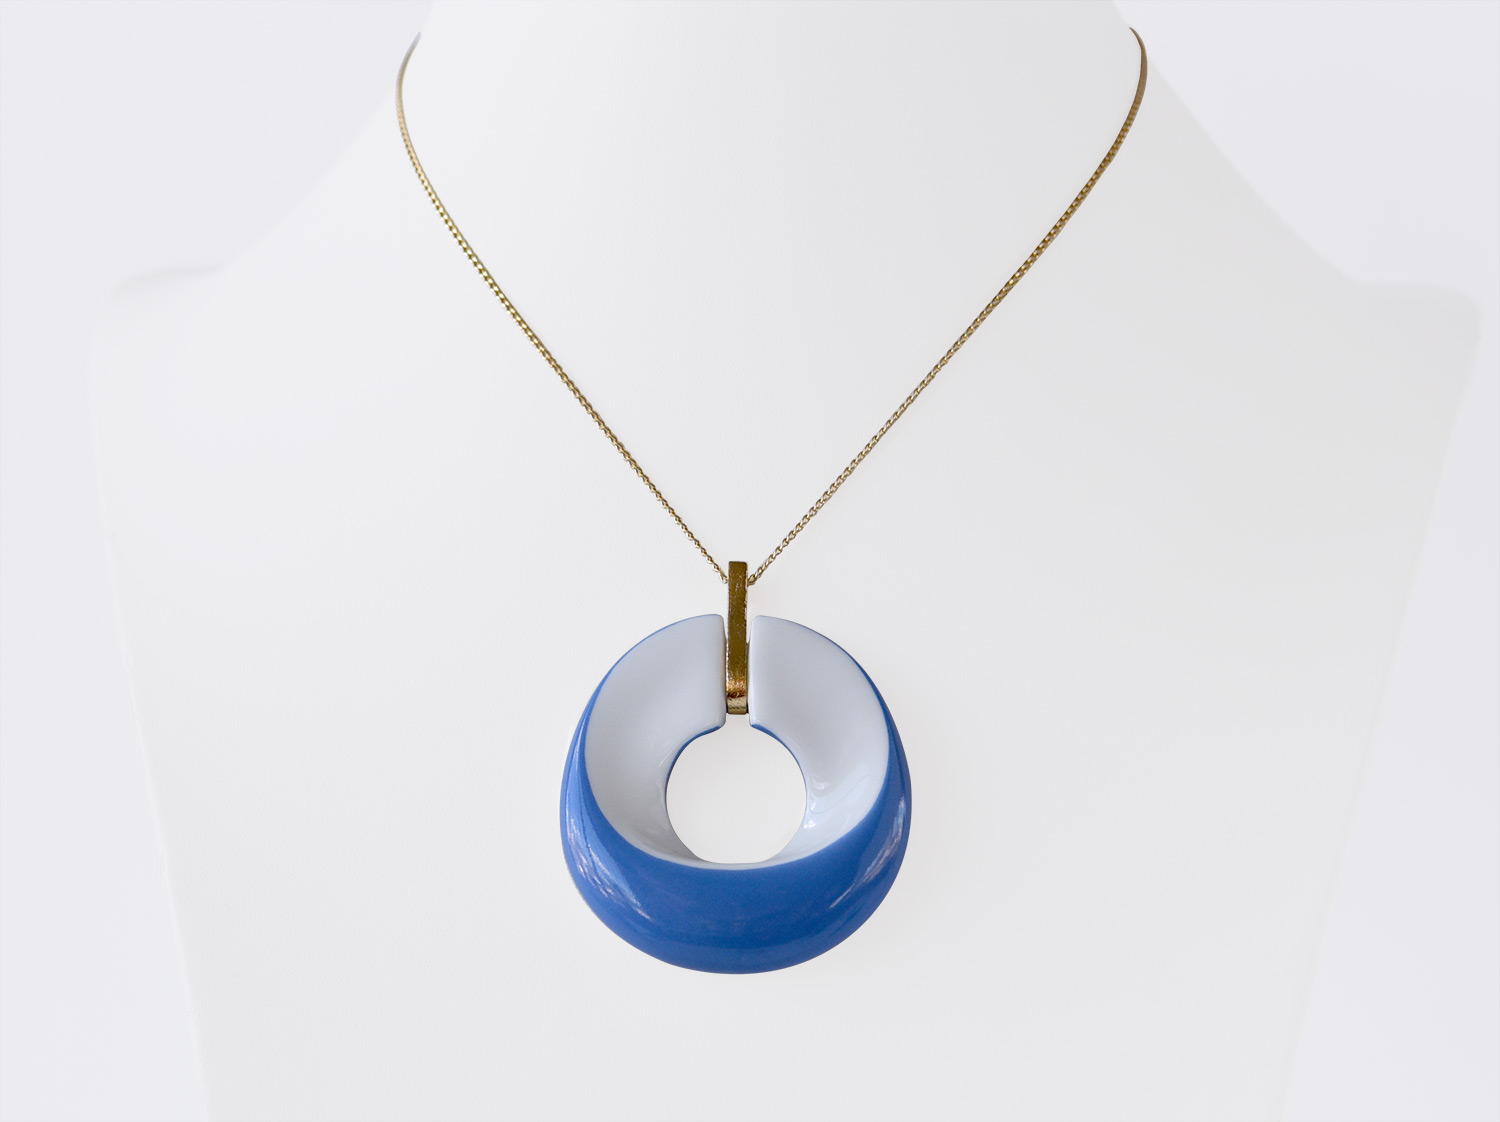 China Pendant of the collection ALBA BLEU | Bernardaud